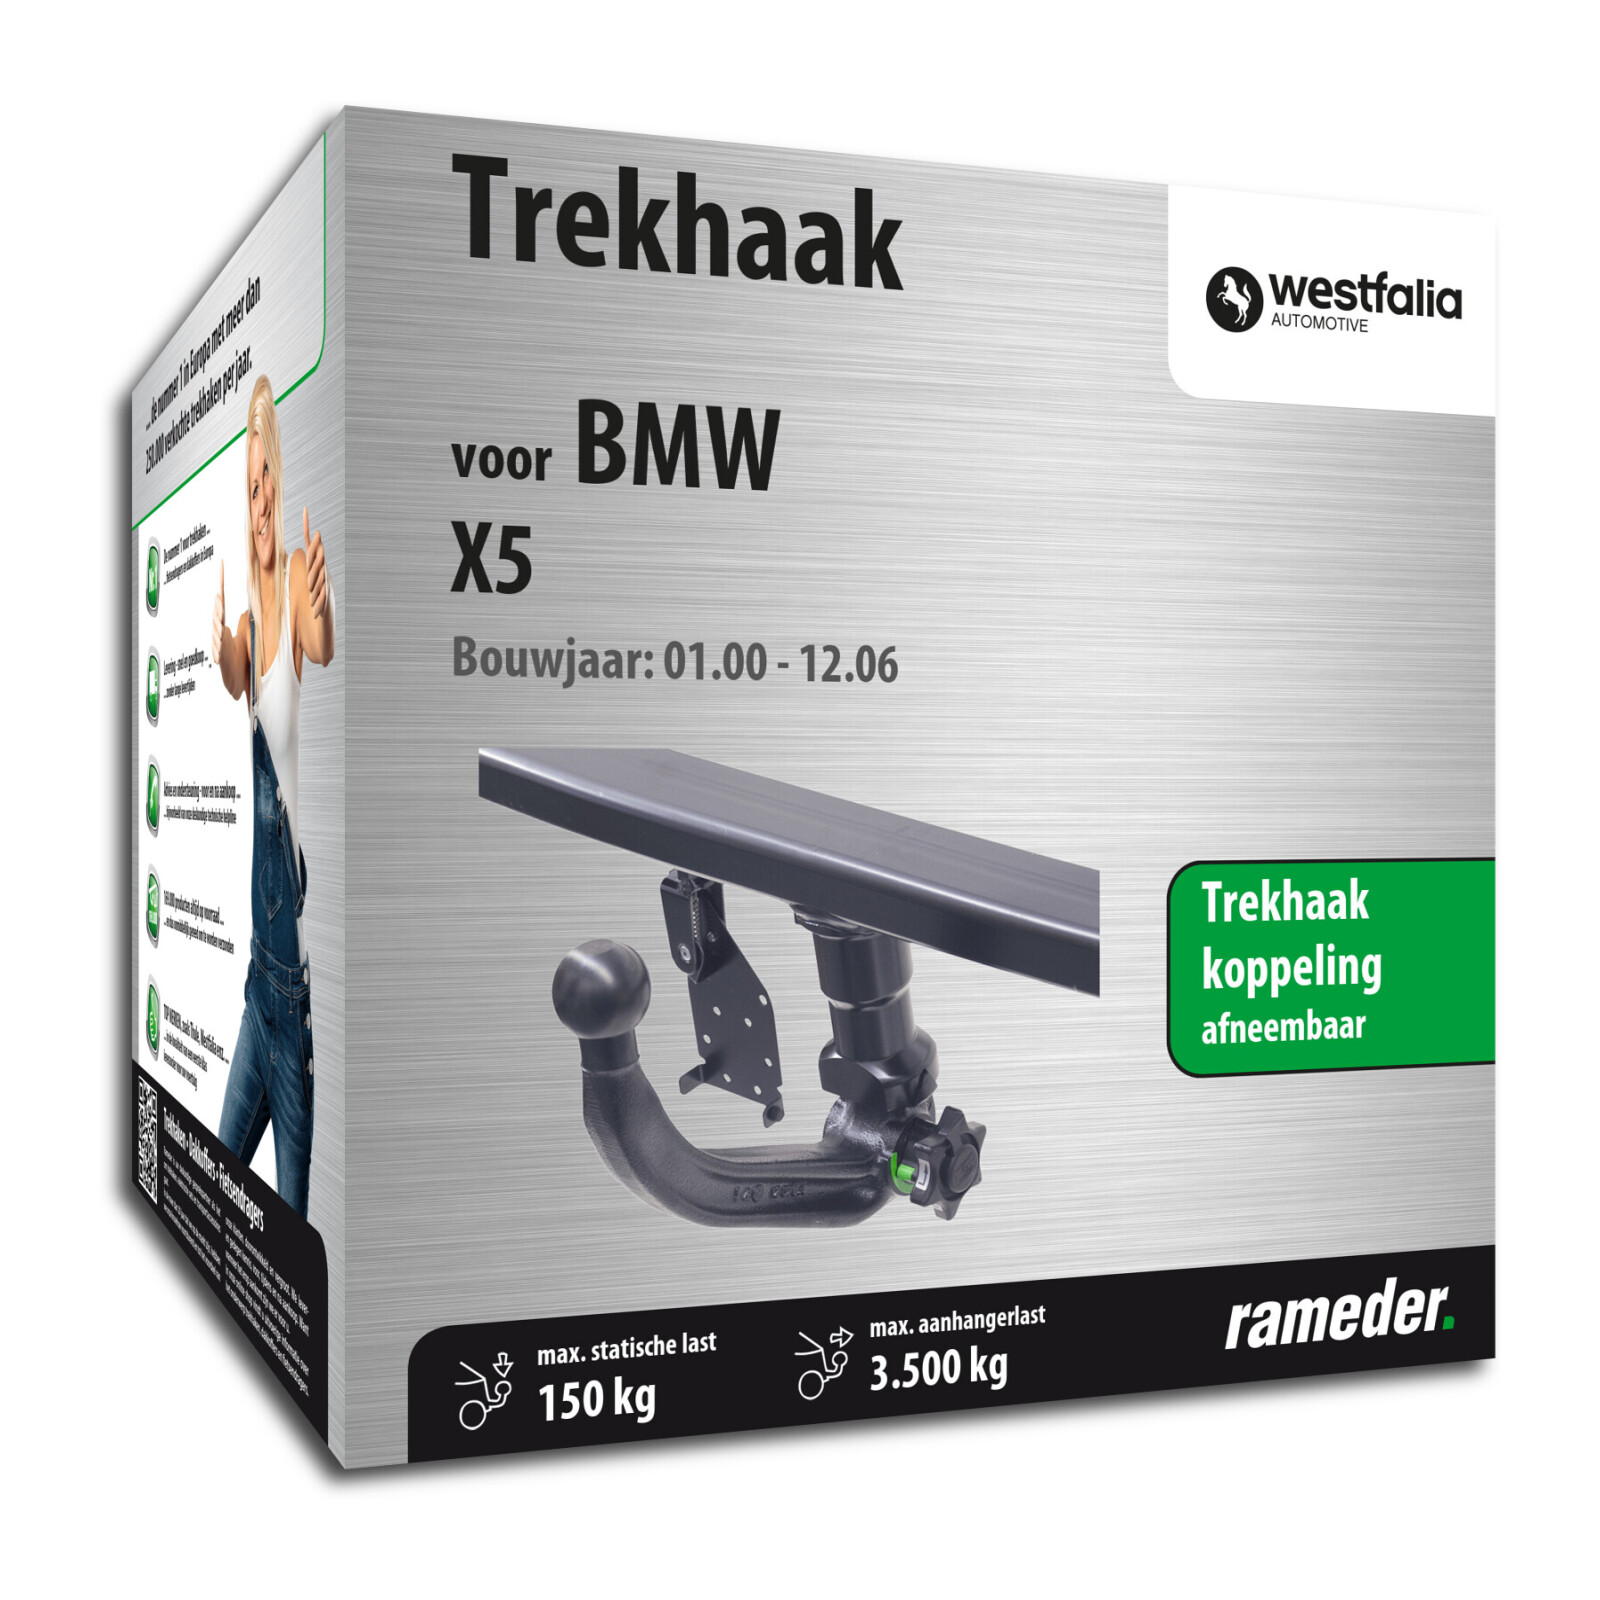 Westfalia Trekhaak Westfalia Trekhaak Afneembaar Bmw X5 Bj 05 00 12 06